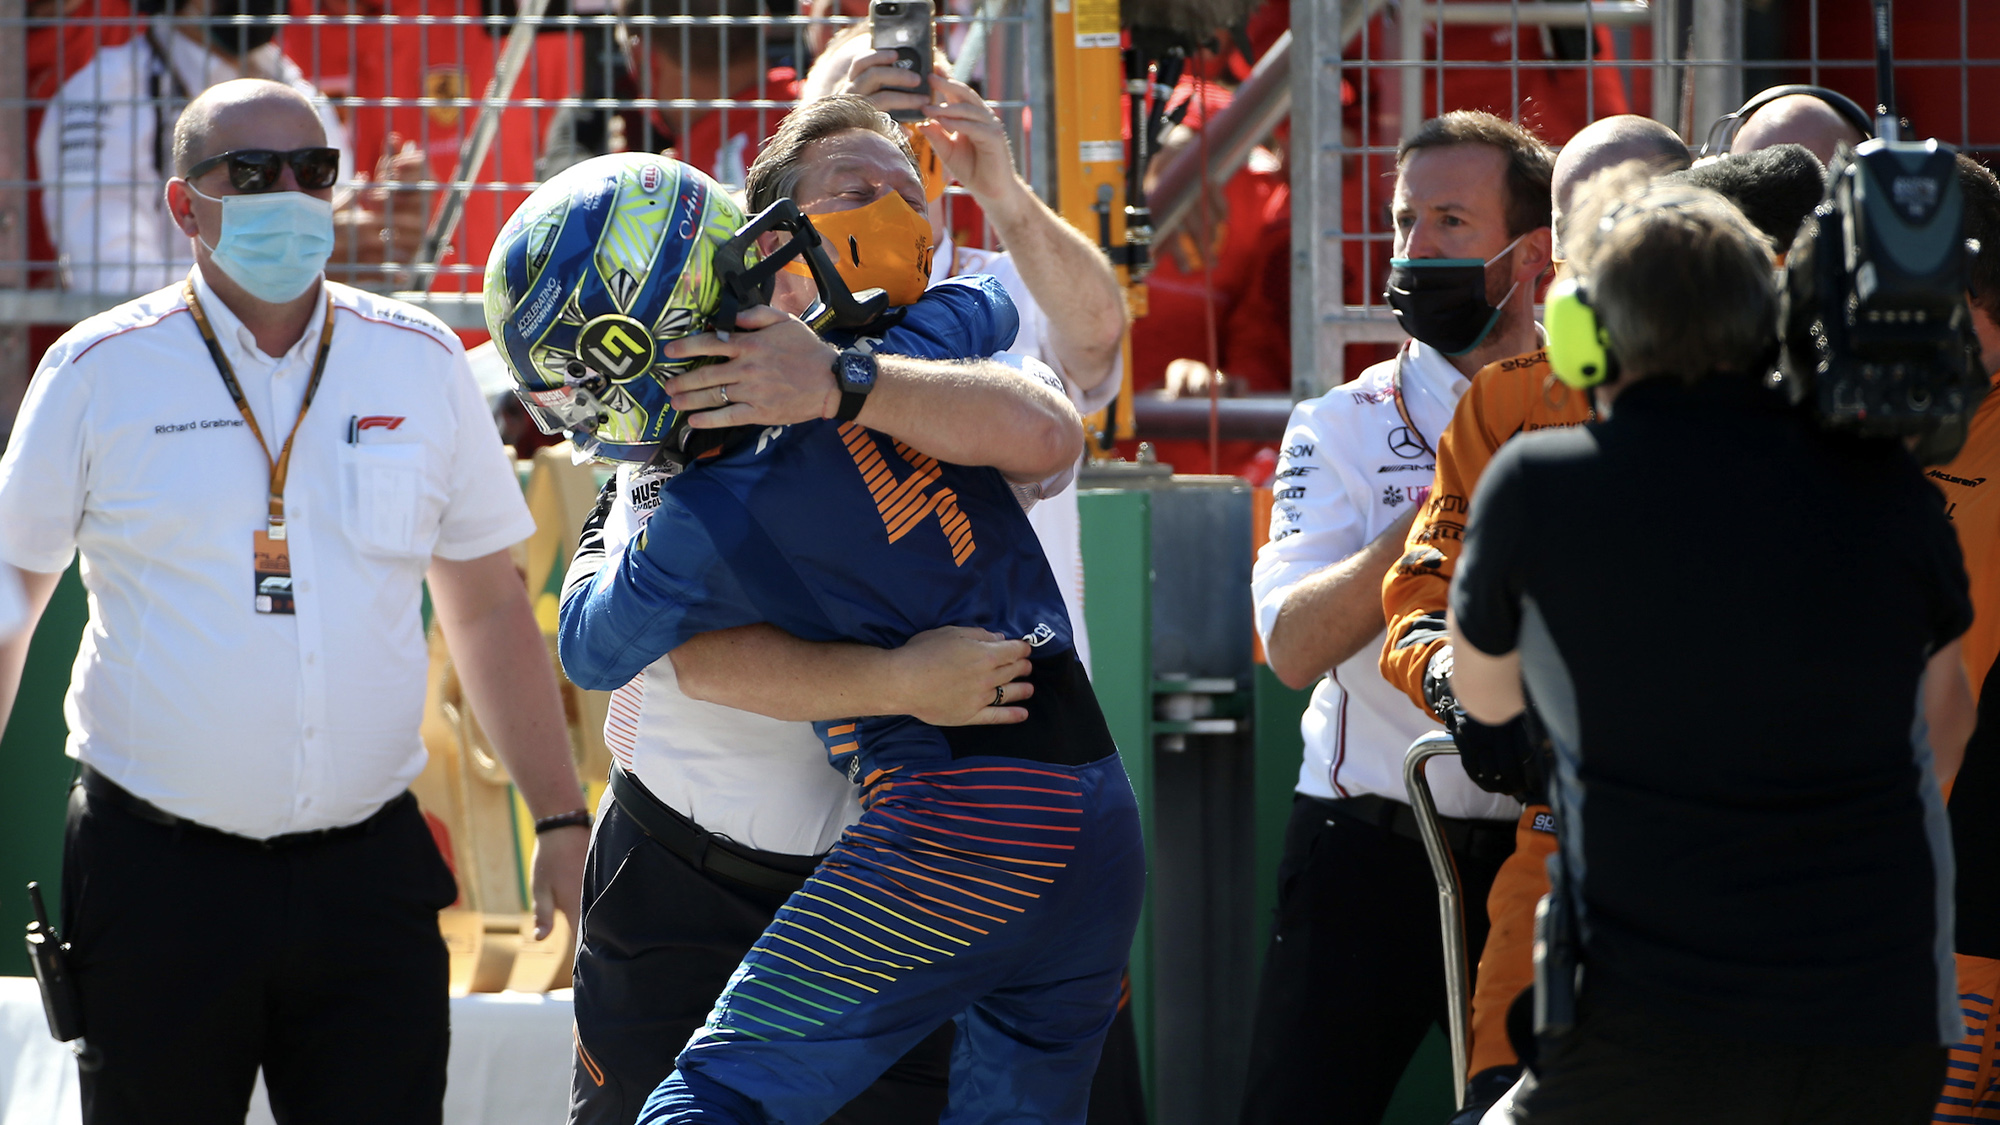 Zak Brown embraces Lando Norris after the 2020 Austrian Grand prix